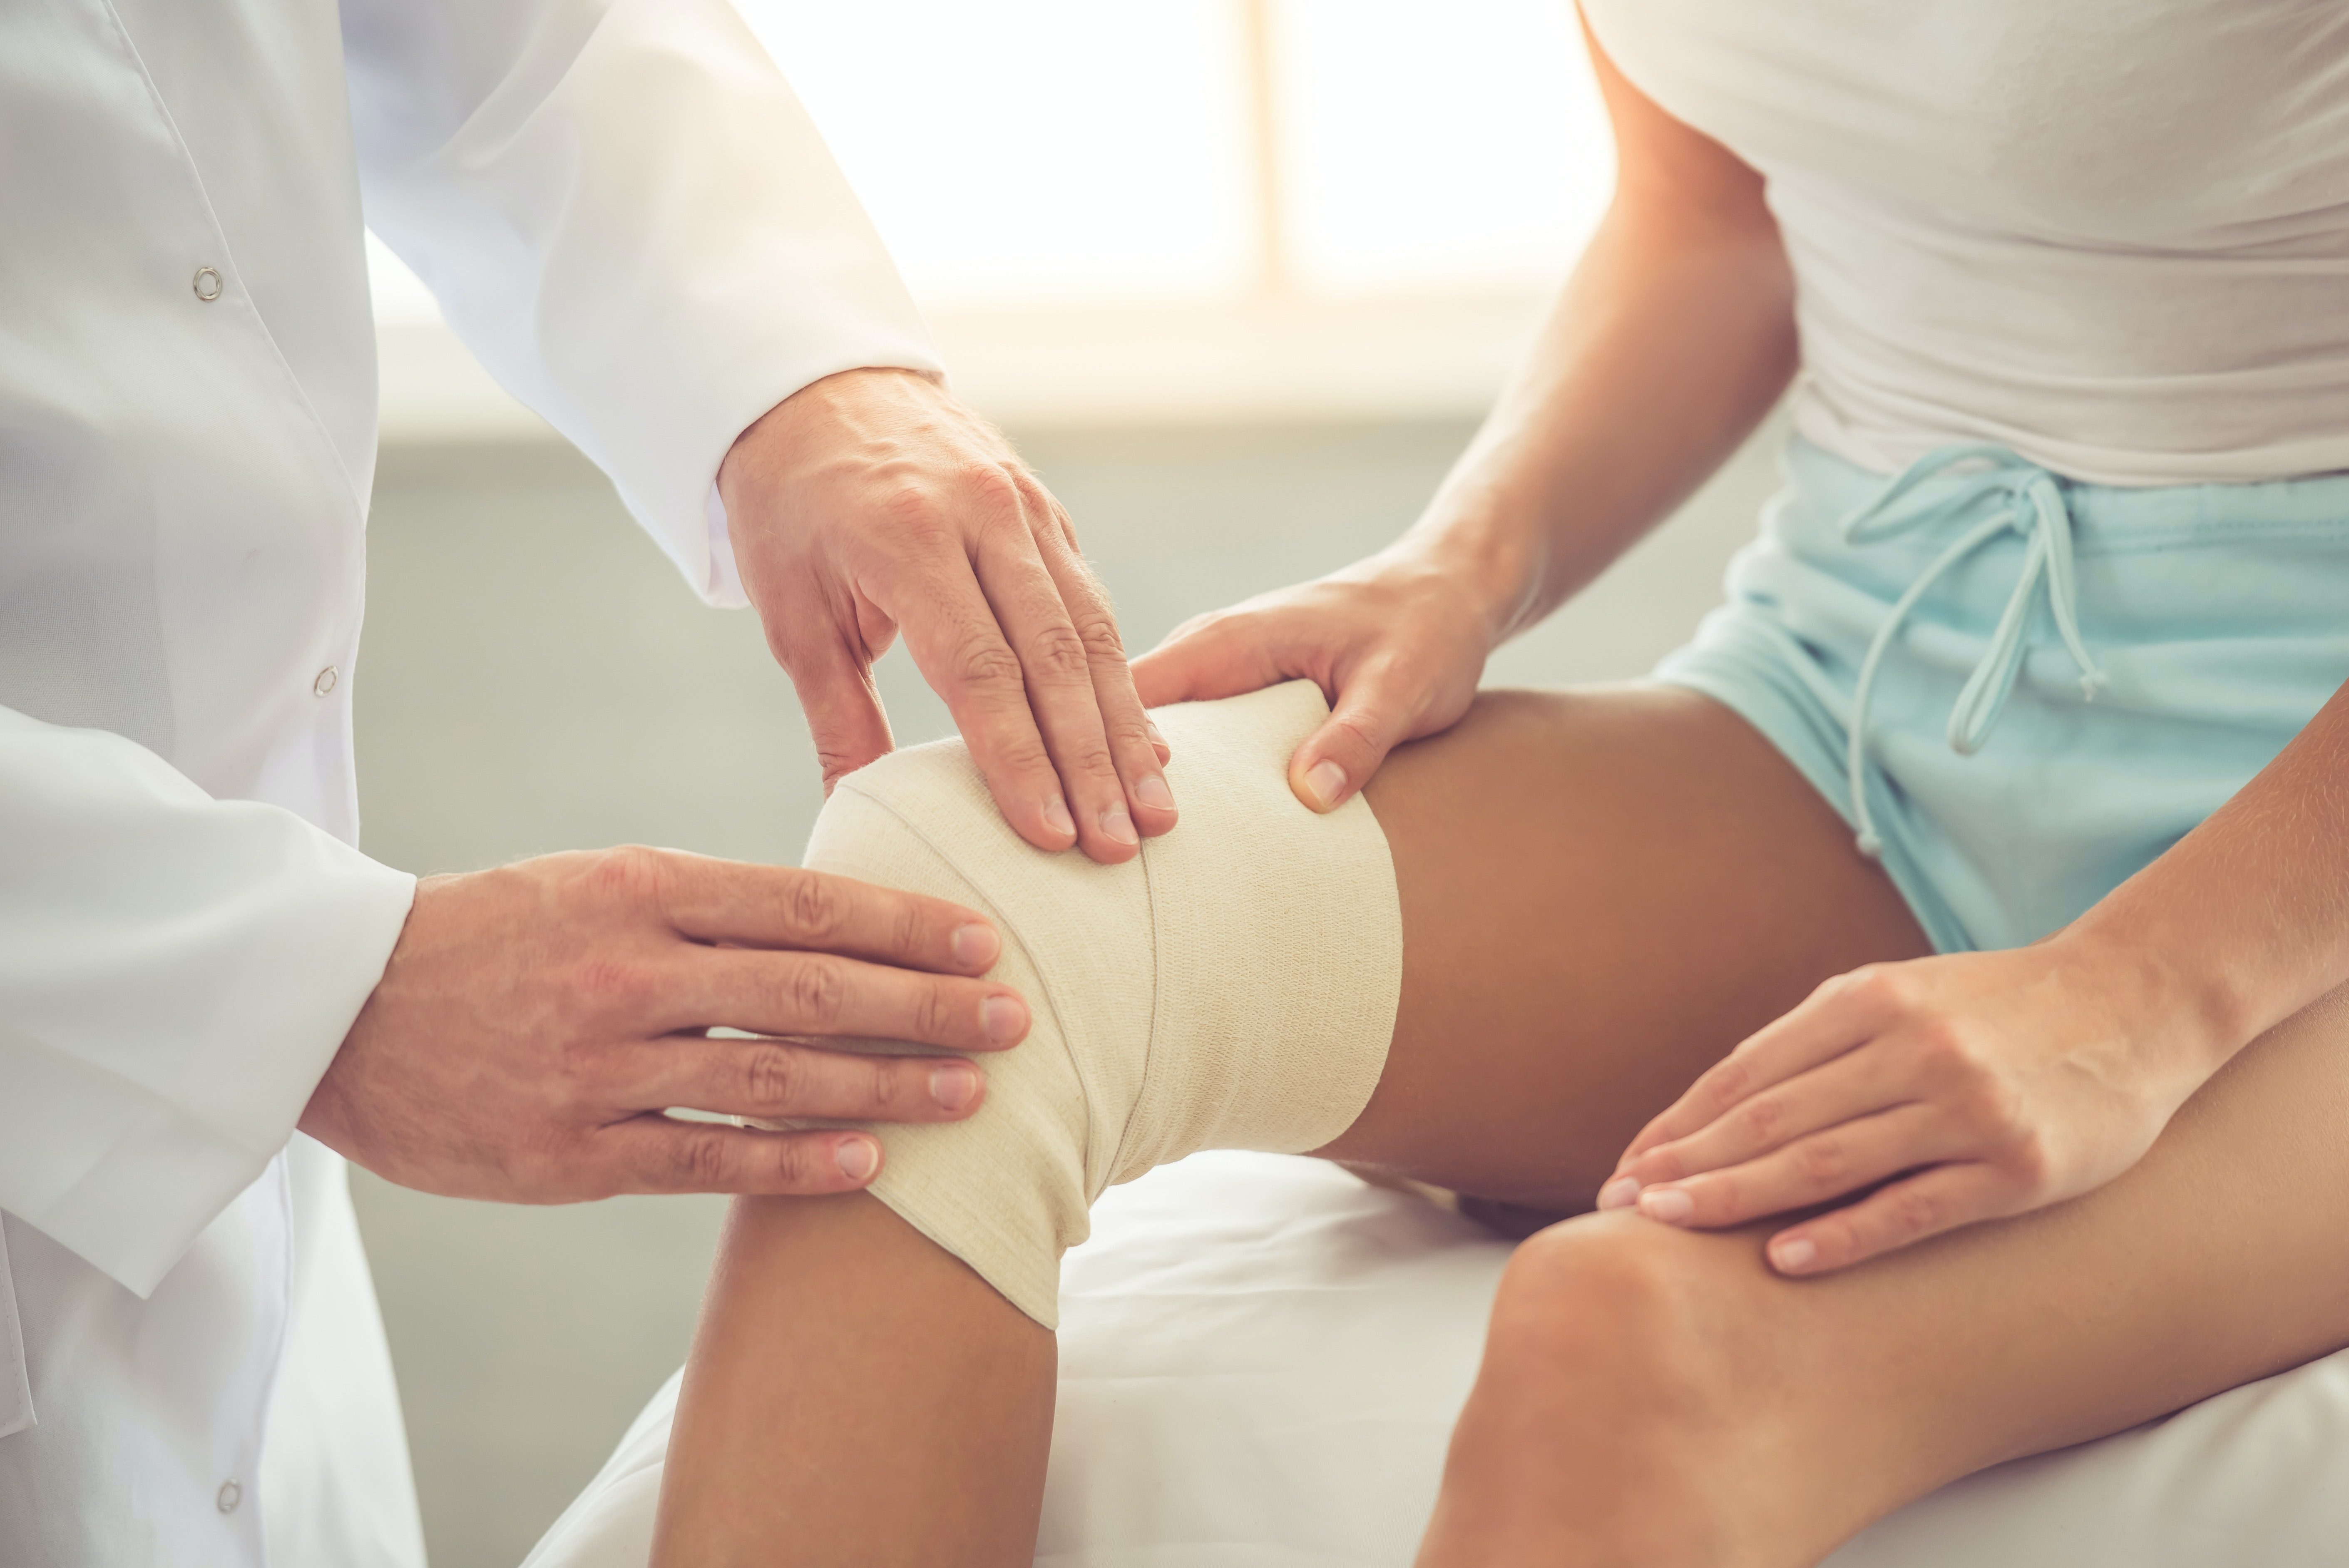 An image depicting a person suffering from Dislocated Kneecap symptoms